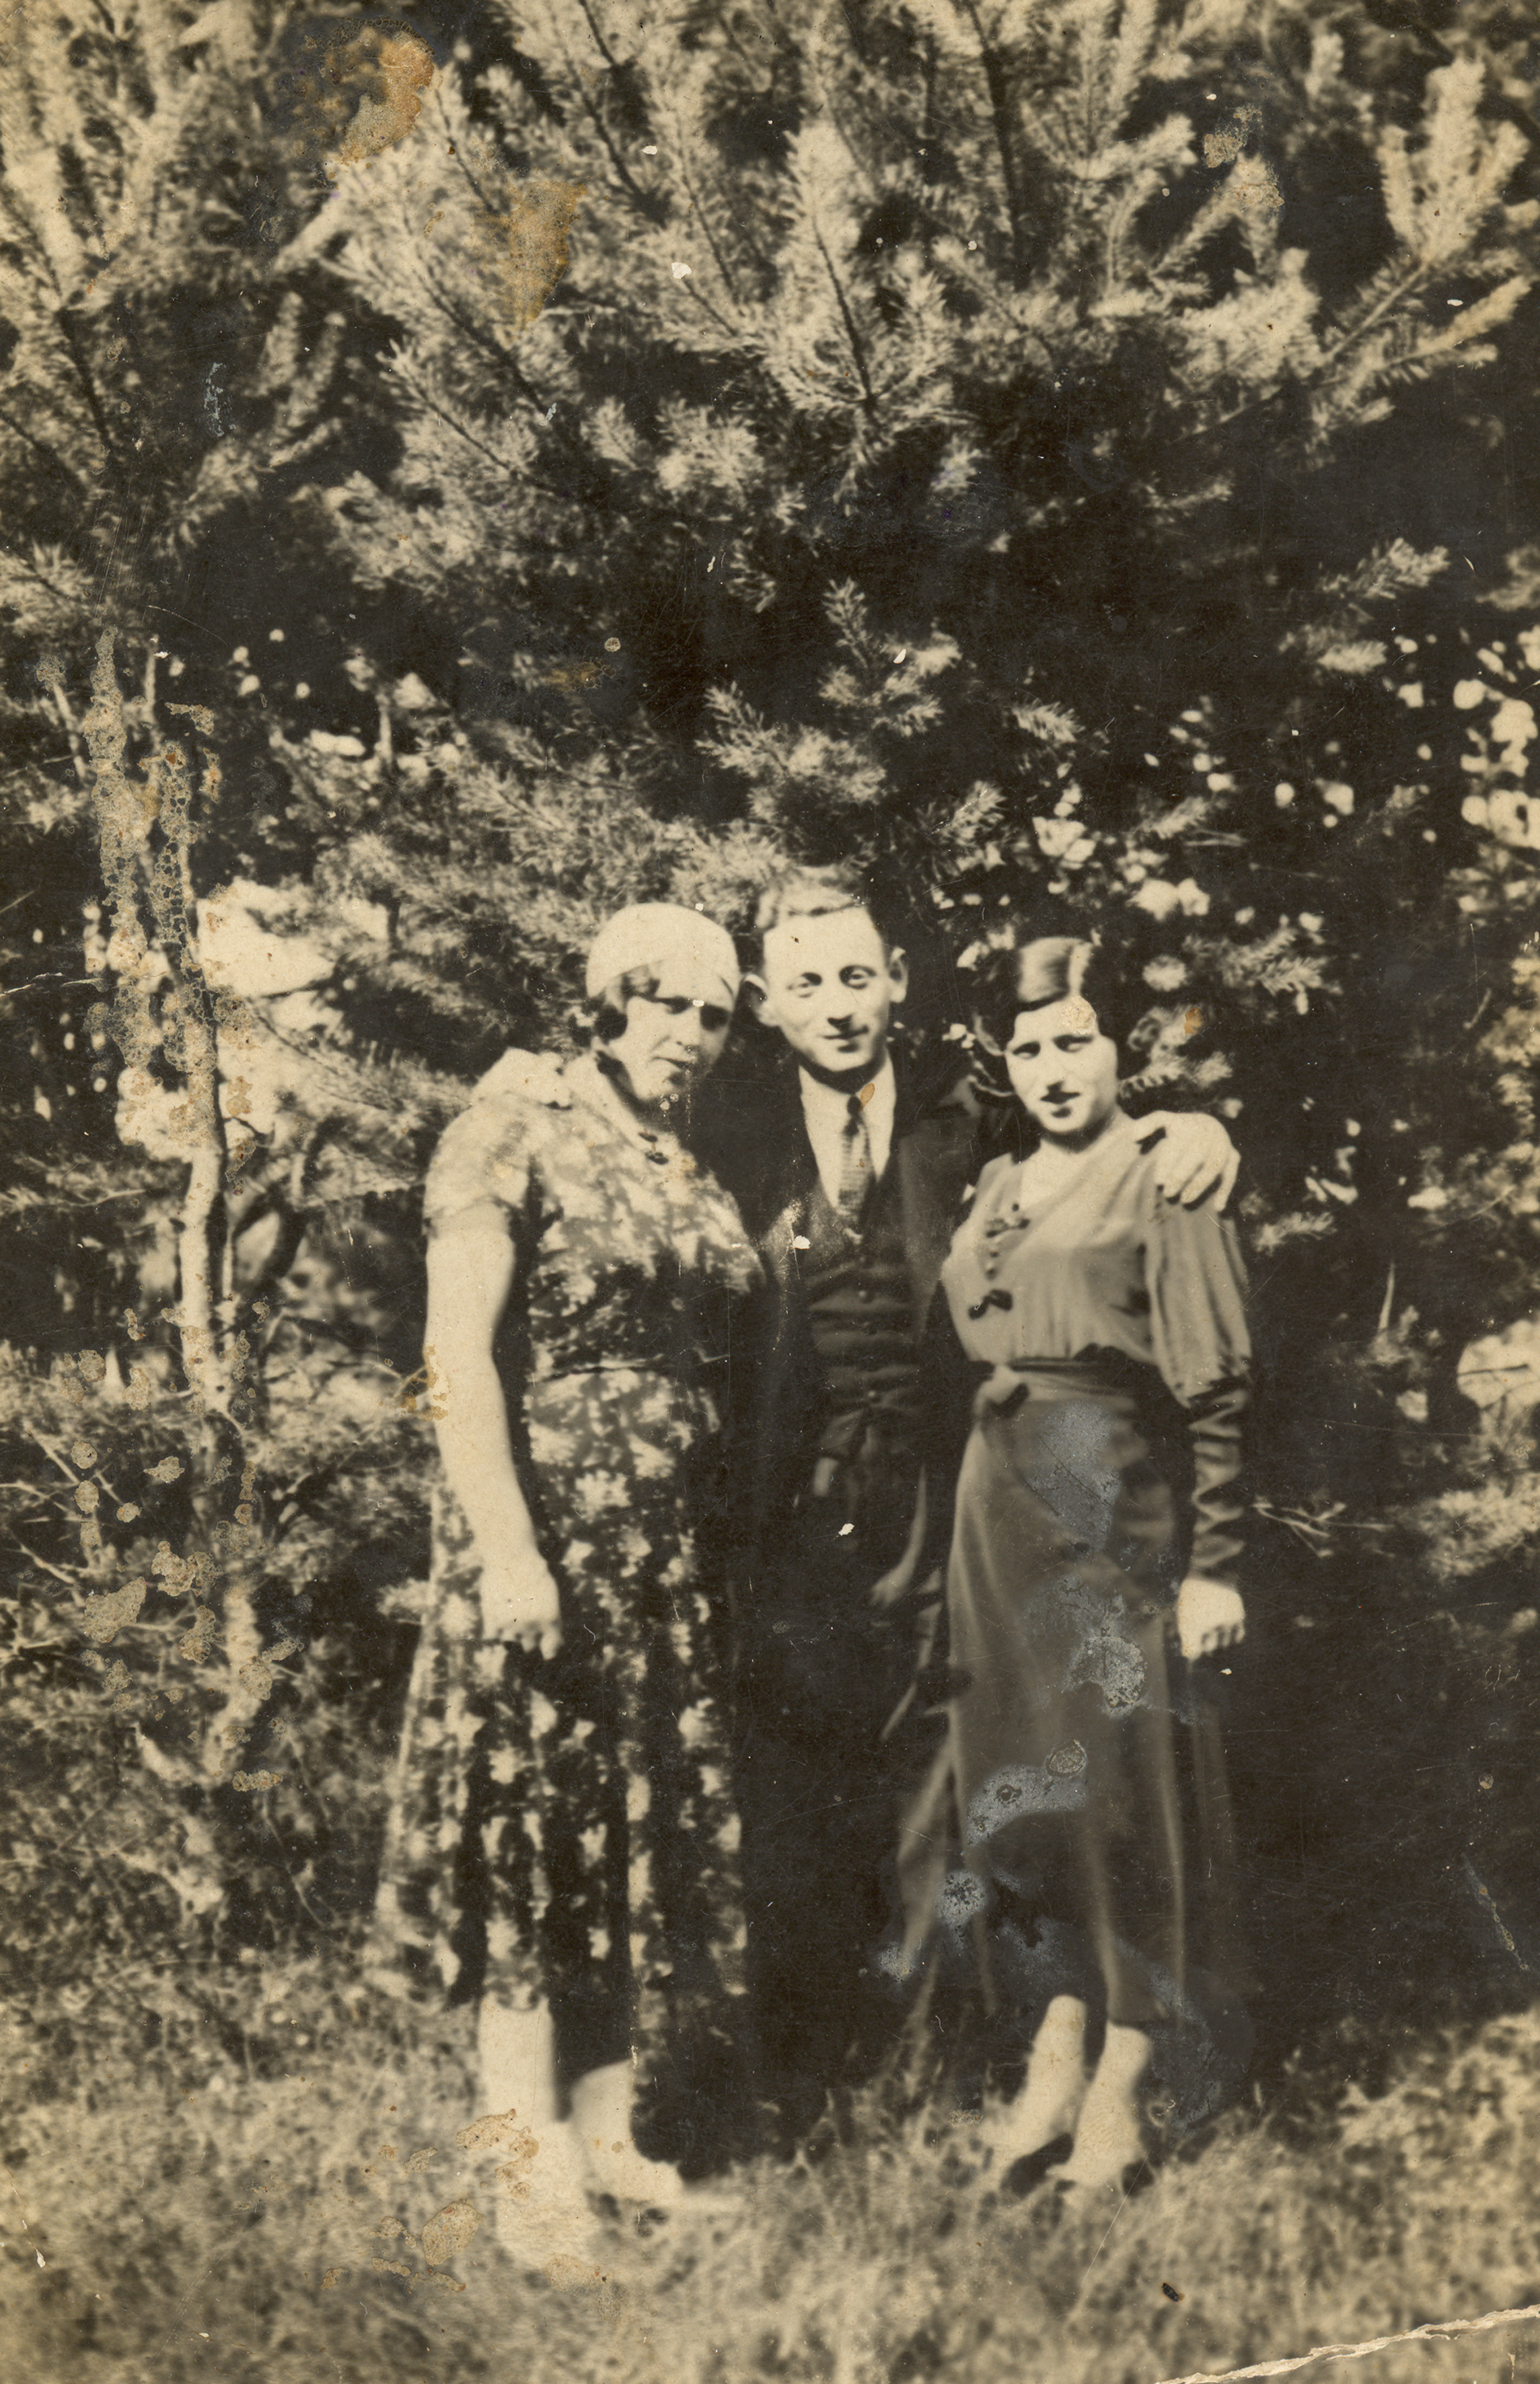 Berl Plager with his wife Beile Plager and their friend